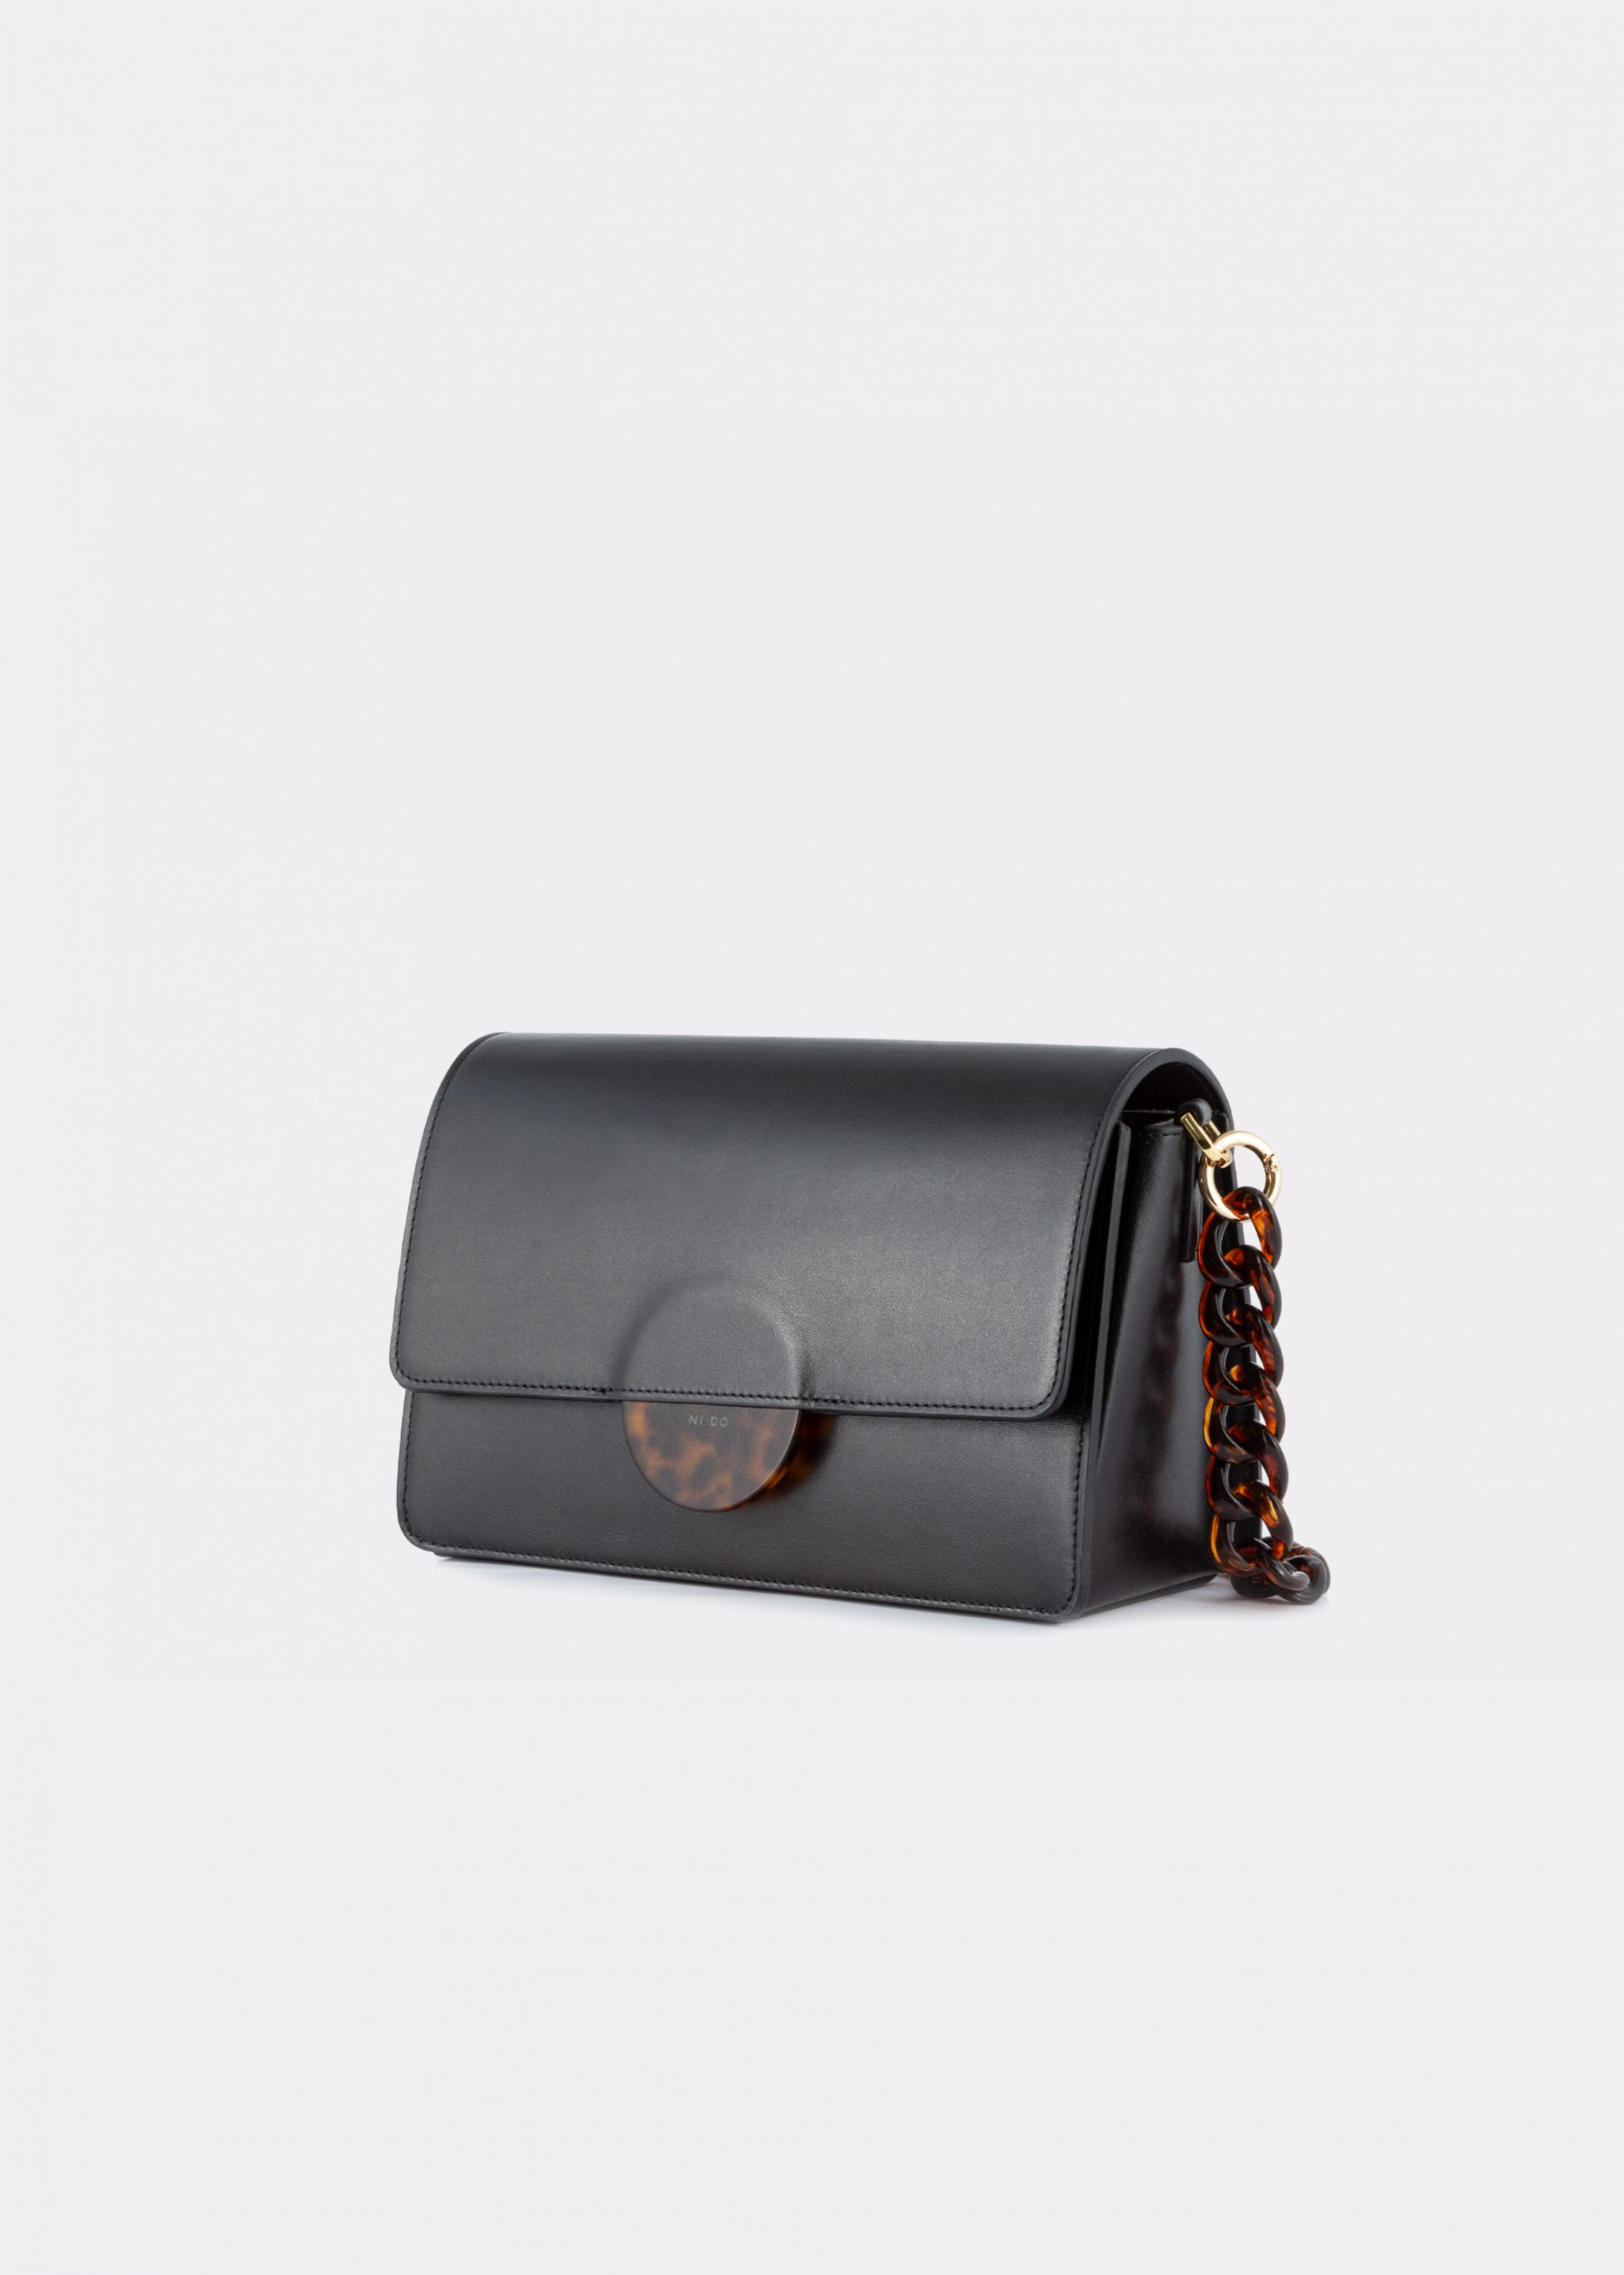 NIDO Cuore_Maxi bag black side view